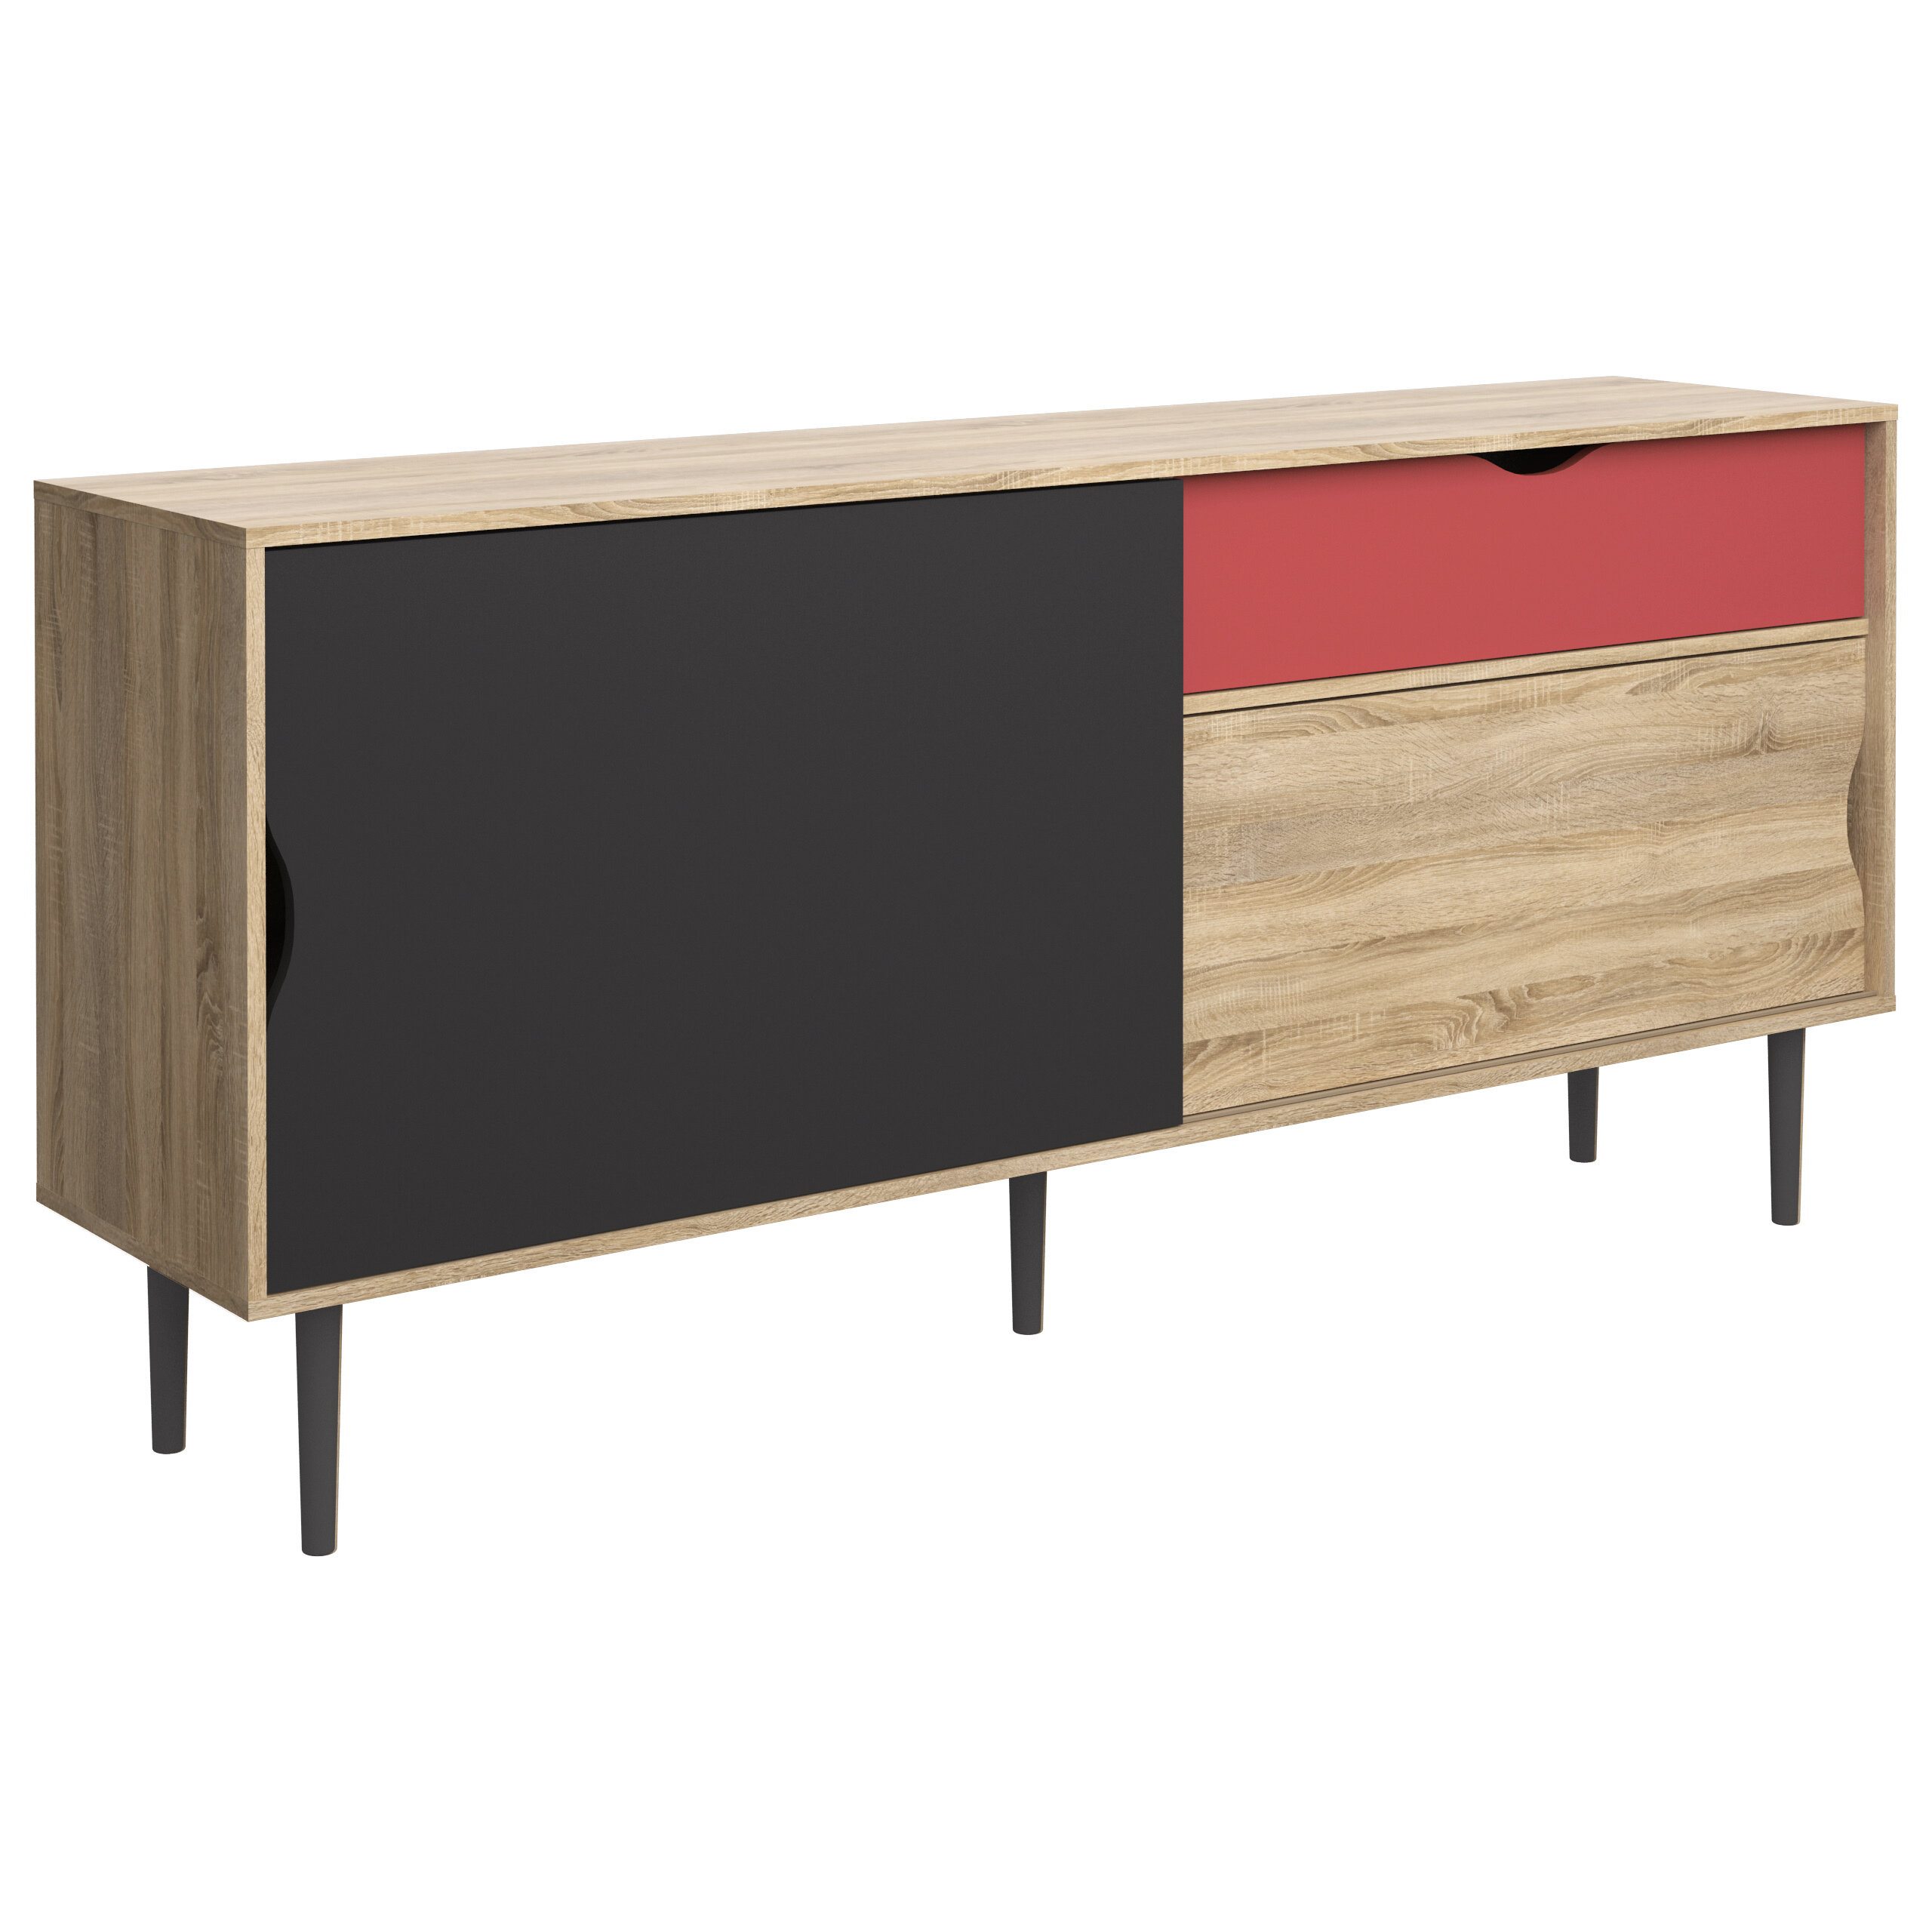 Dovray Sideboard With Regard To Dovray Sideboards (Gallery 2 of 30)